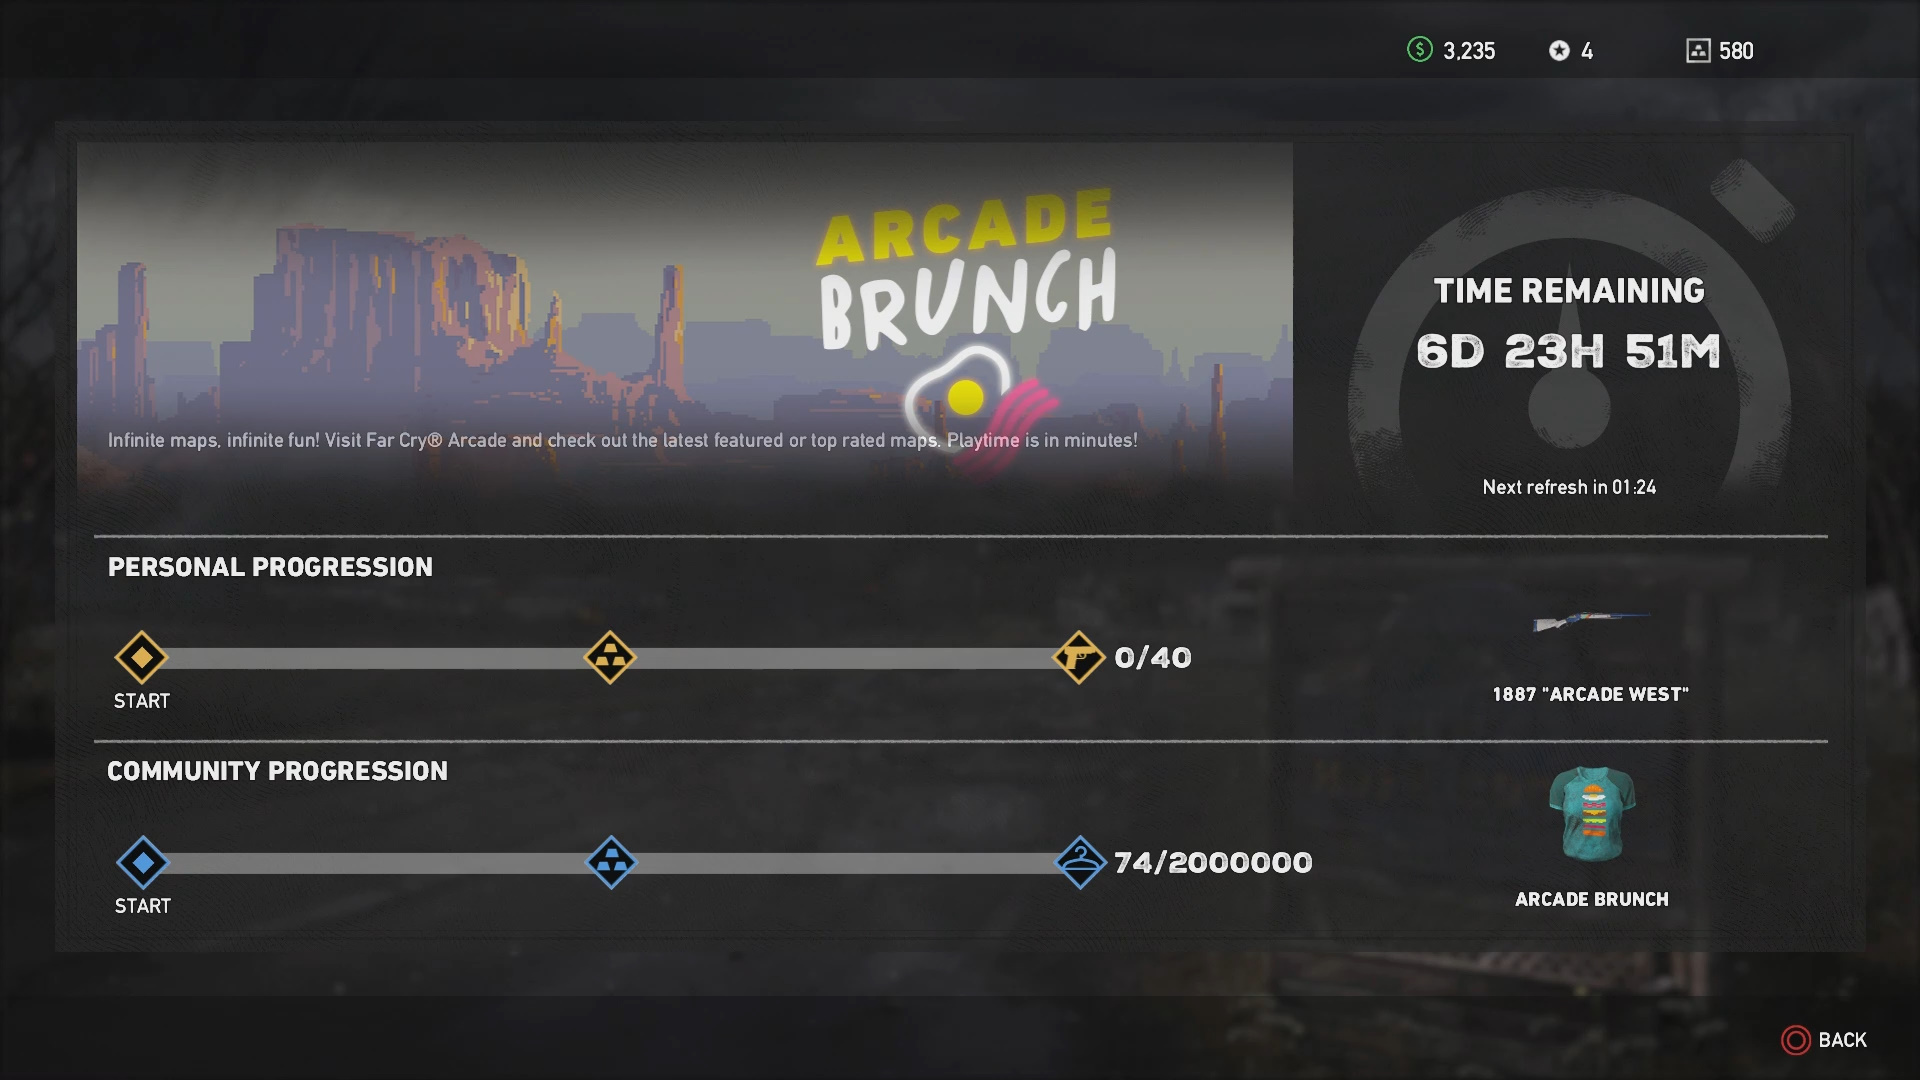 Arcade Brunch Live Event Guide Far Cry 5